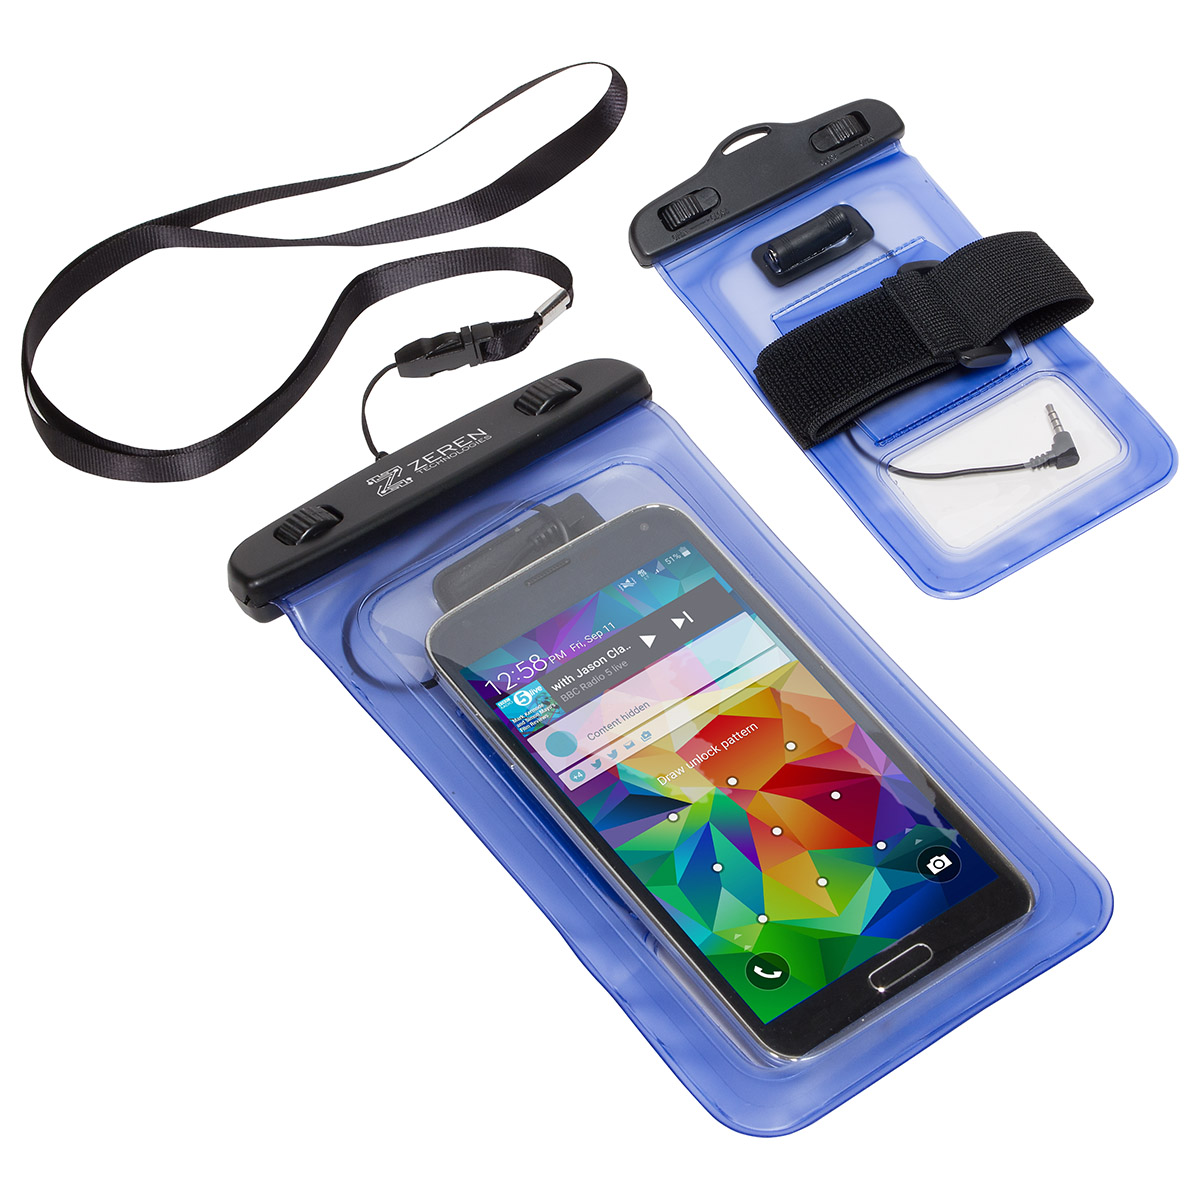 Waterproof Smart Phone Case with 3.5mm Audio Jack, WOR-SP16, 1 Colour Imprint